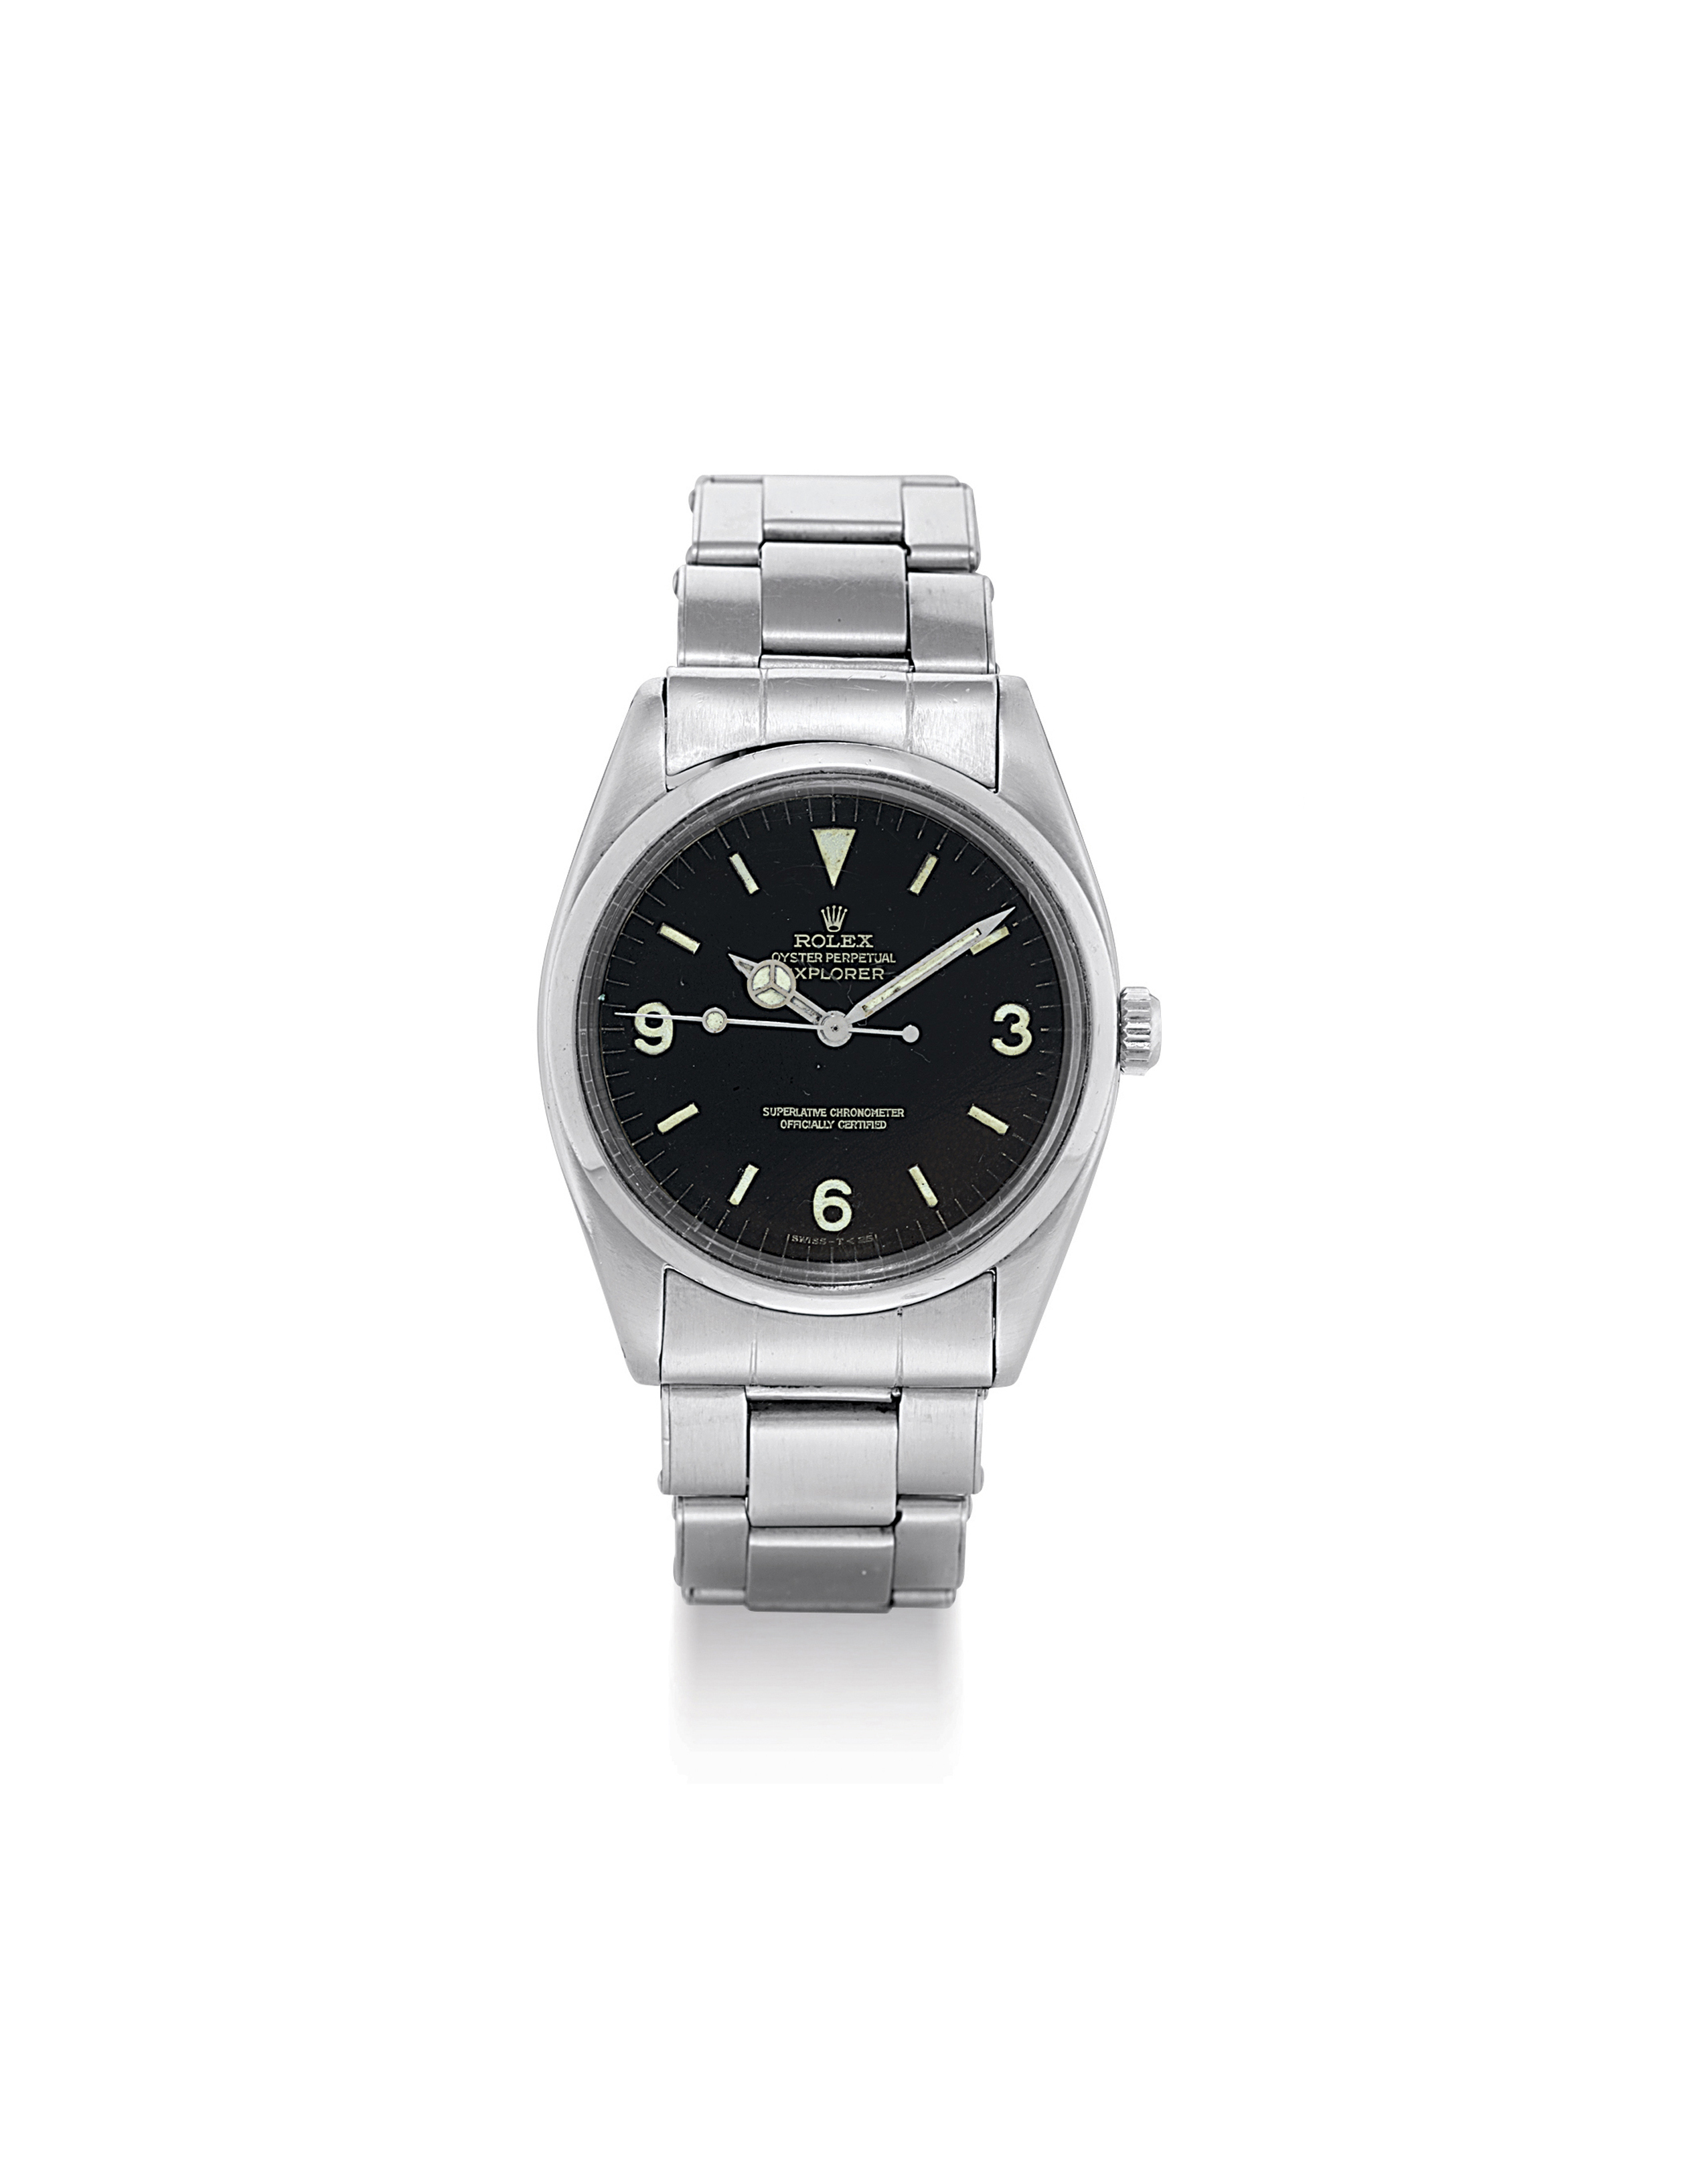 ROLEX. A STAINLESS STEEL AUTOMATIC WRISTWATCH WITH BRACELET